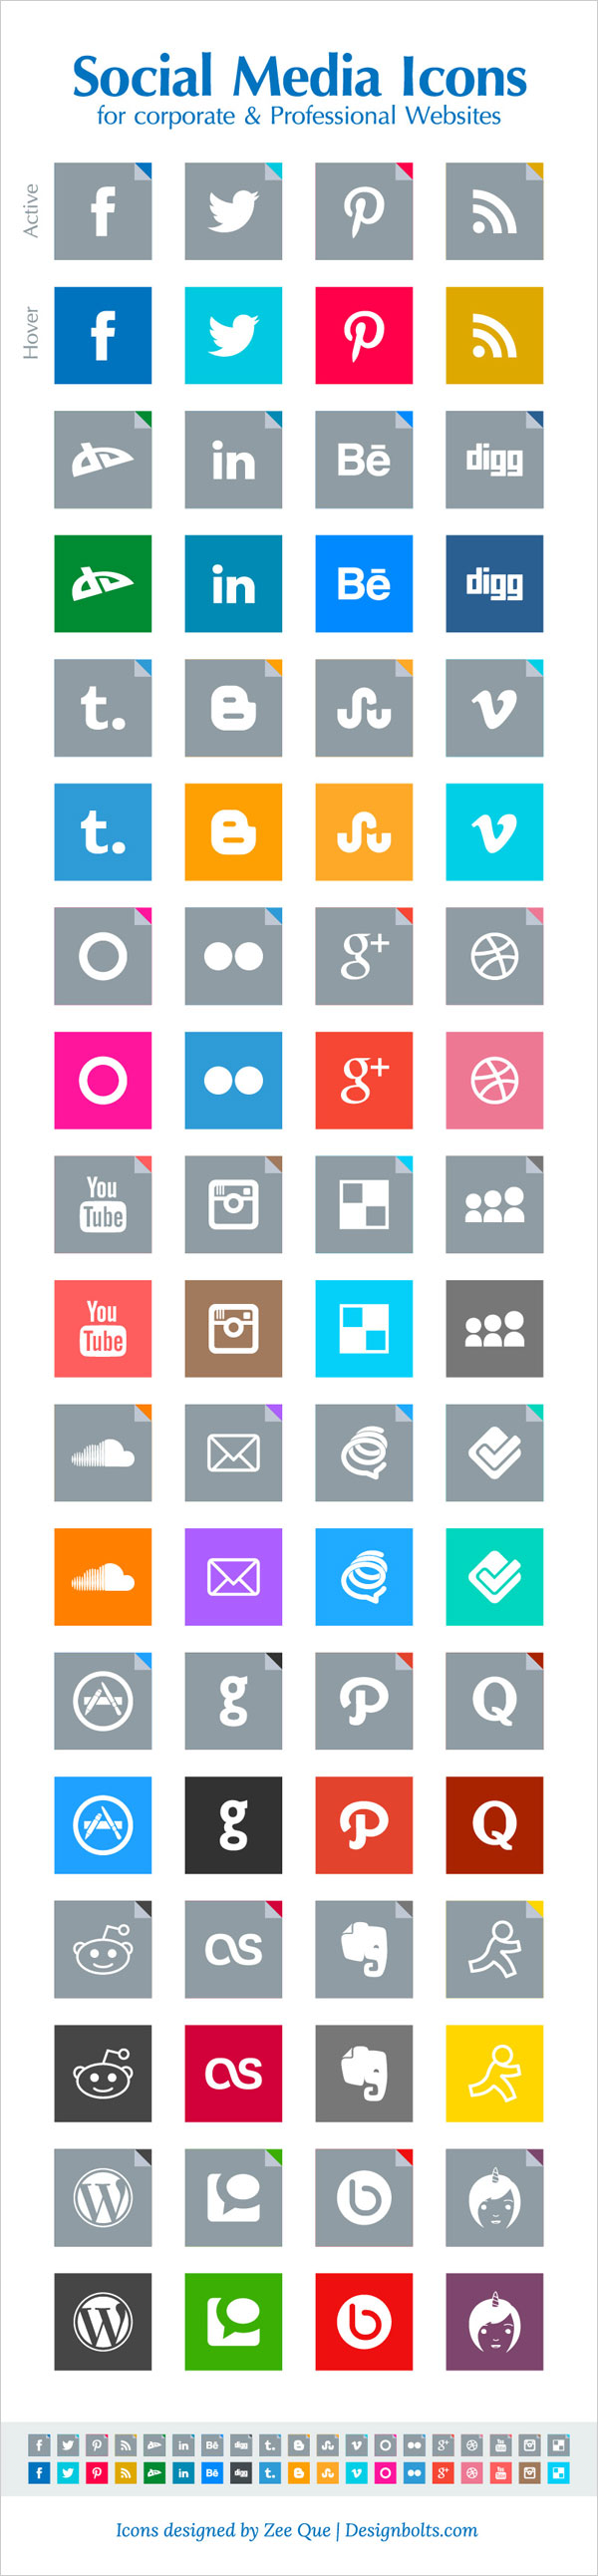 11 Professional Social Media Icons Images